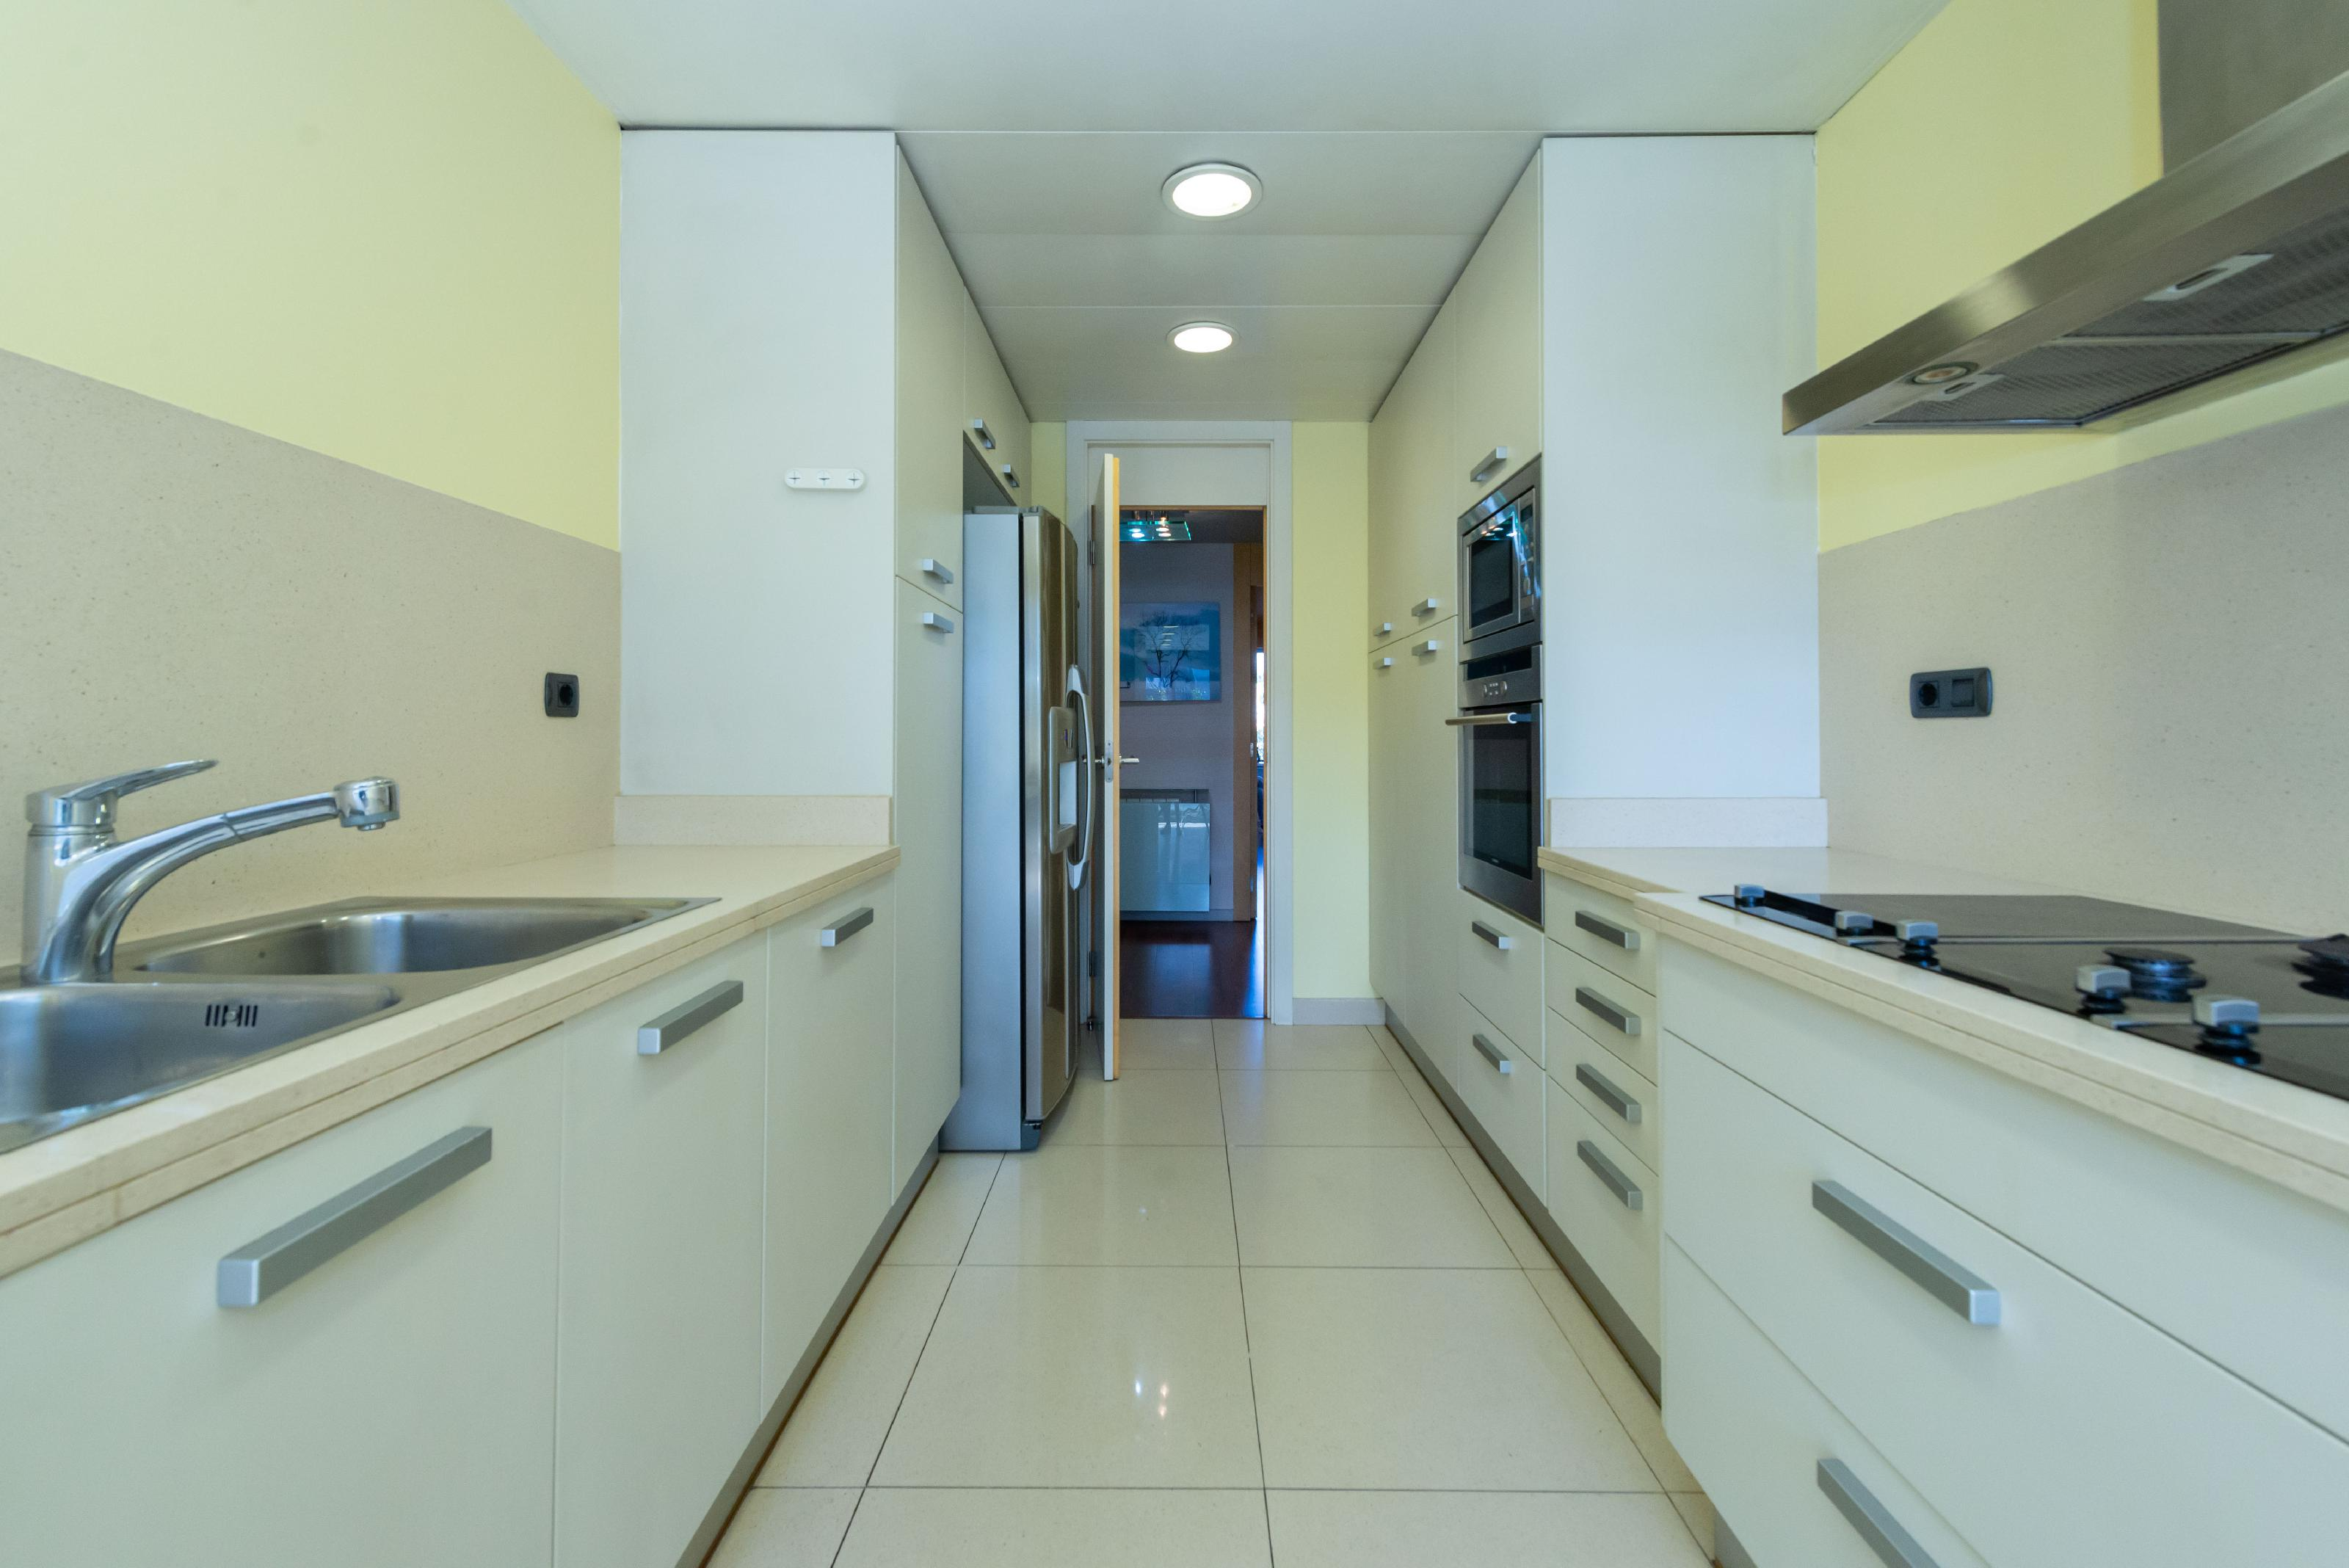 246682 Flat for sale in Gràcia, Vallcarca and Els Penitents 20